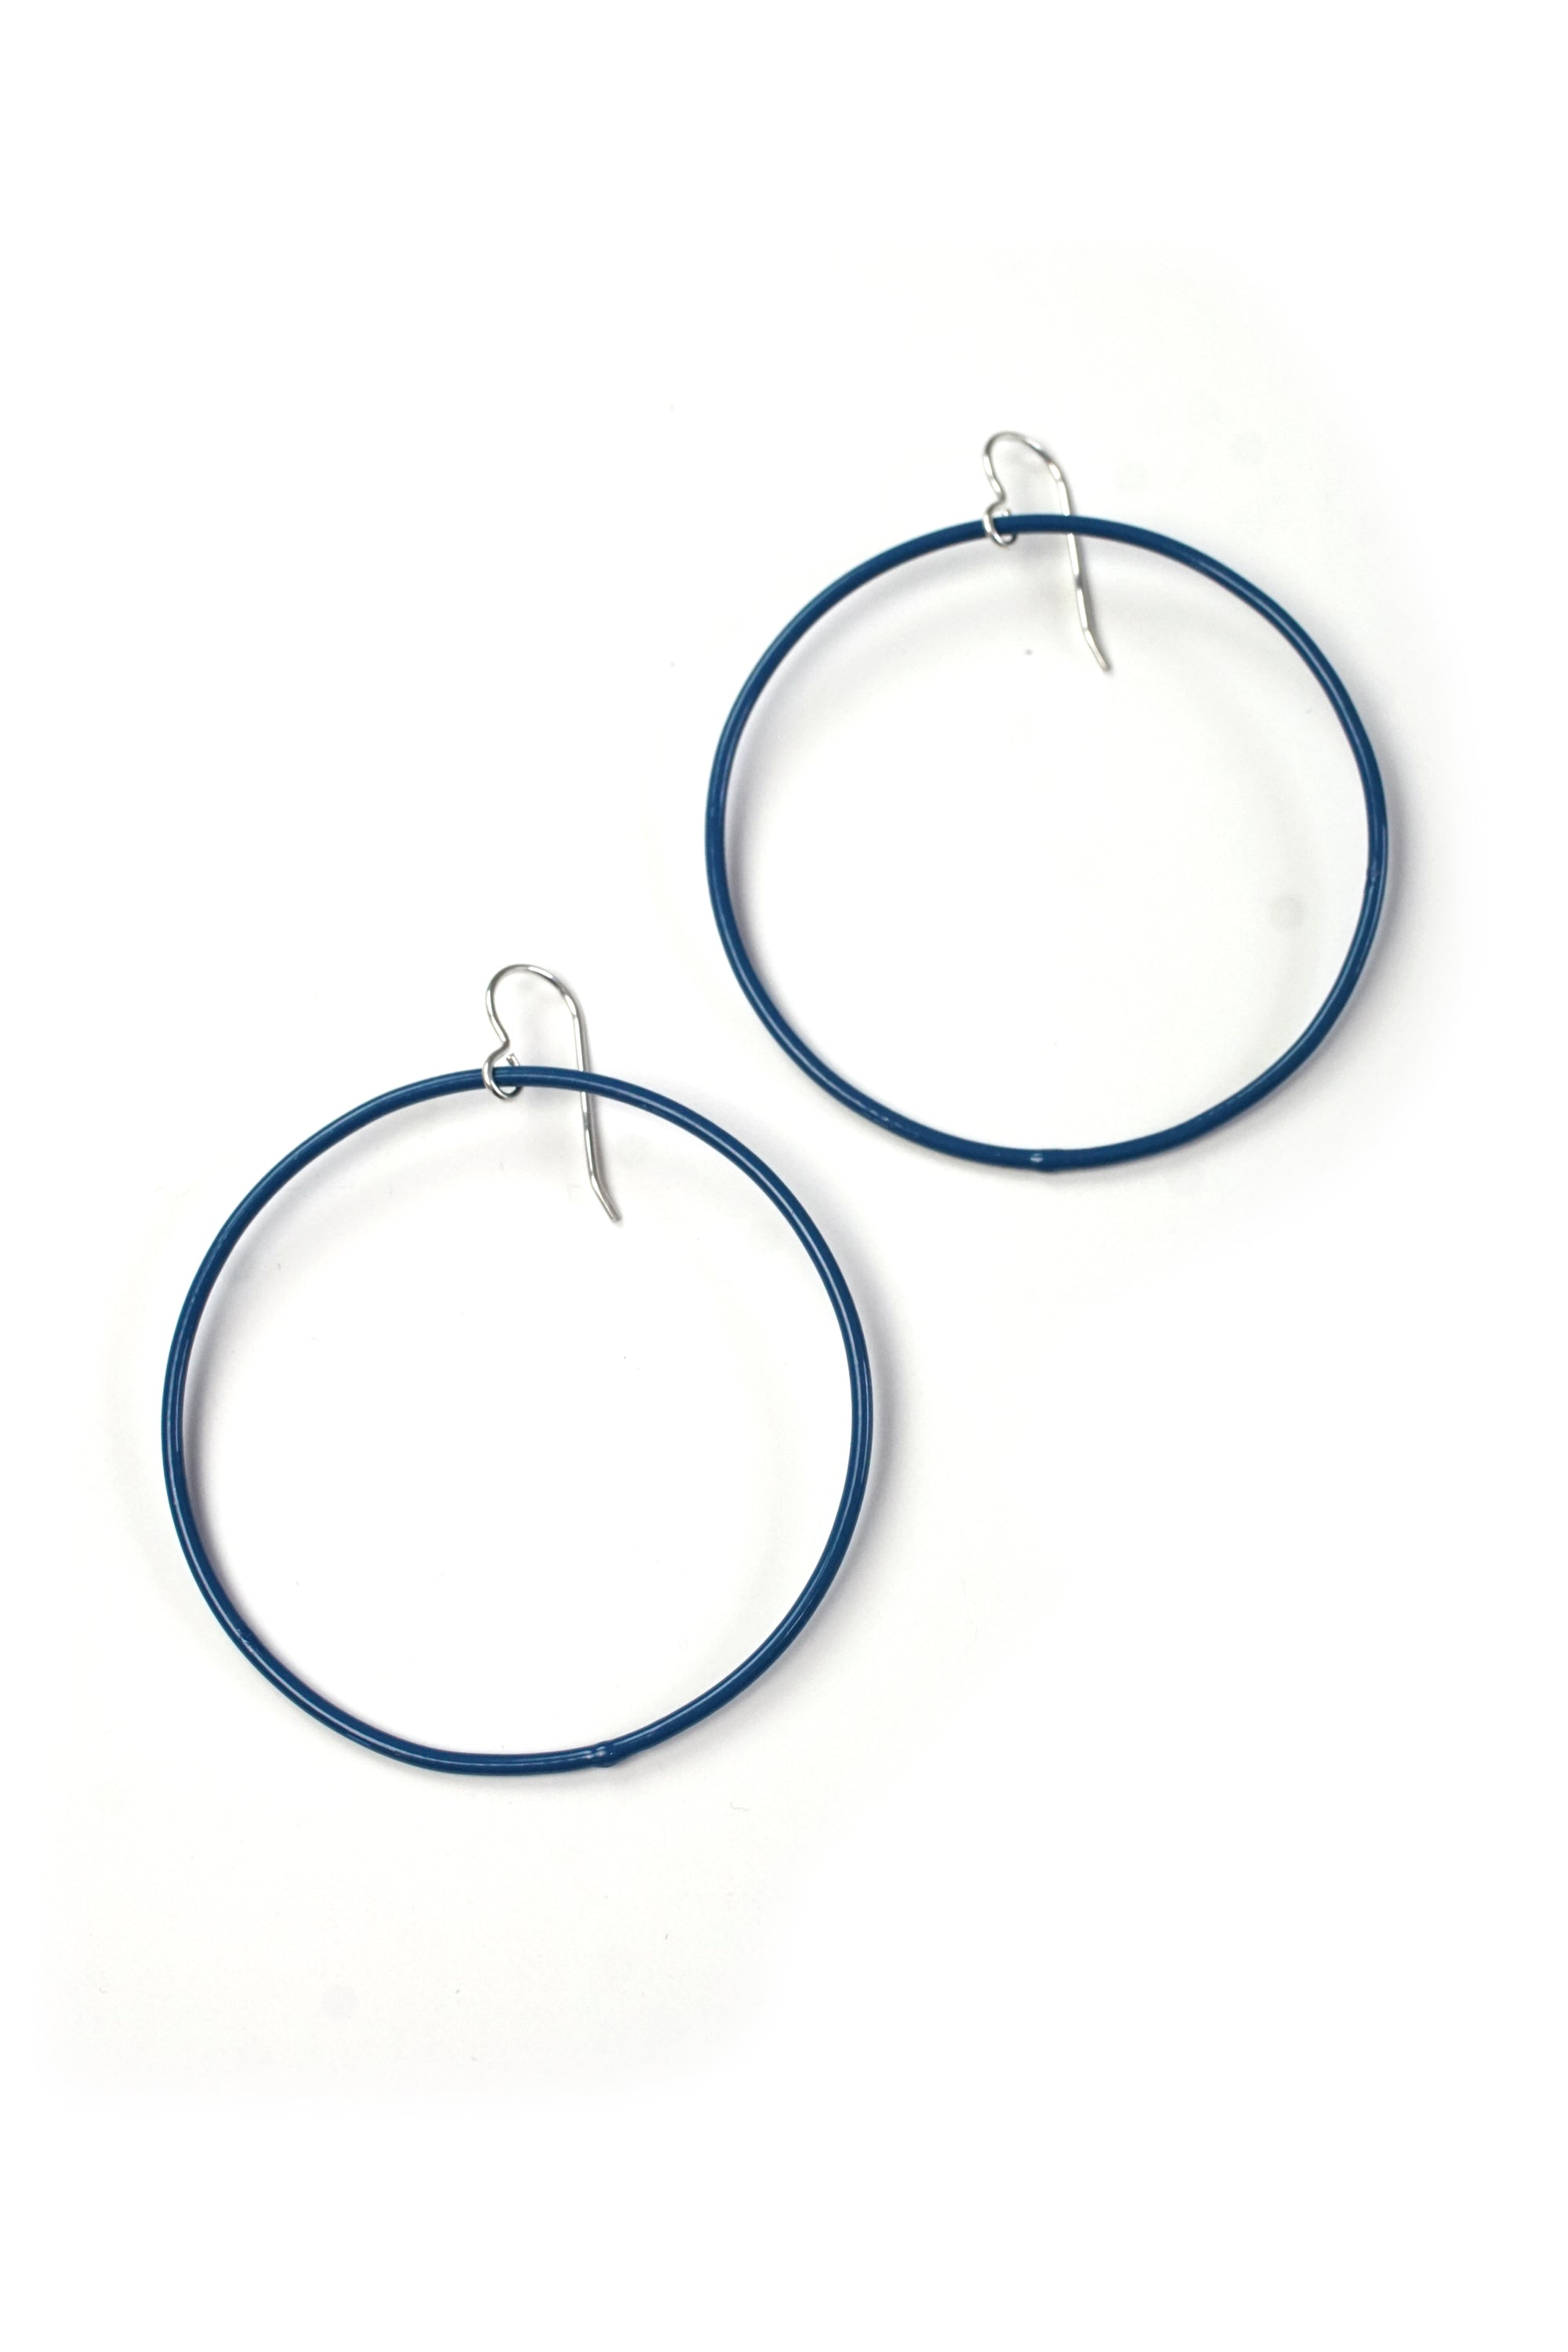 Large Evident Earrings in Azure Blue